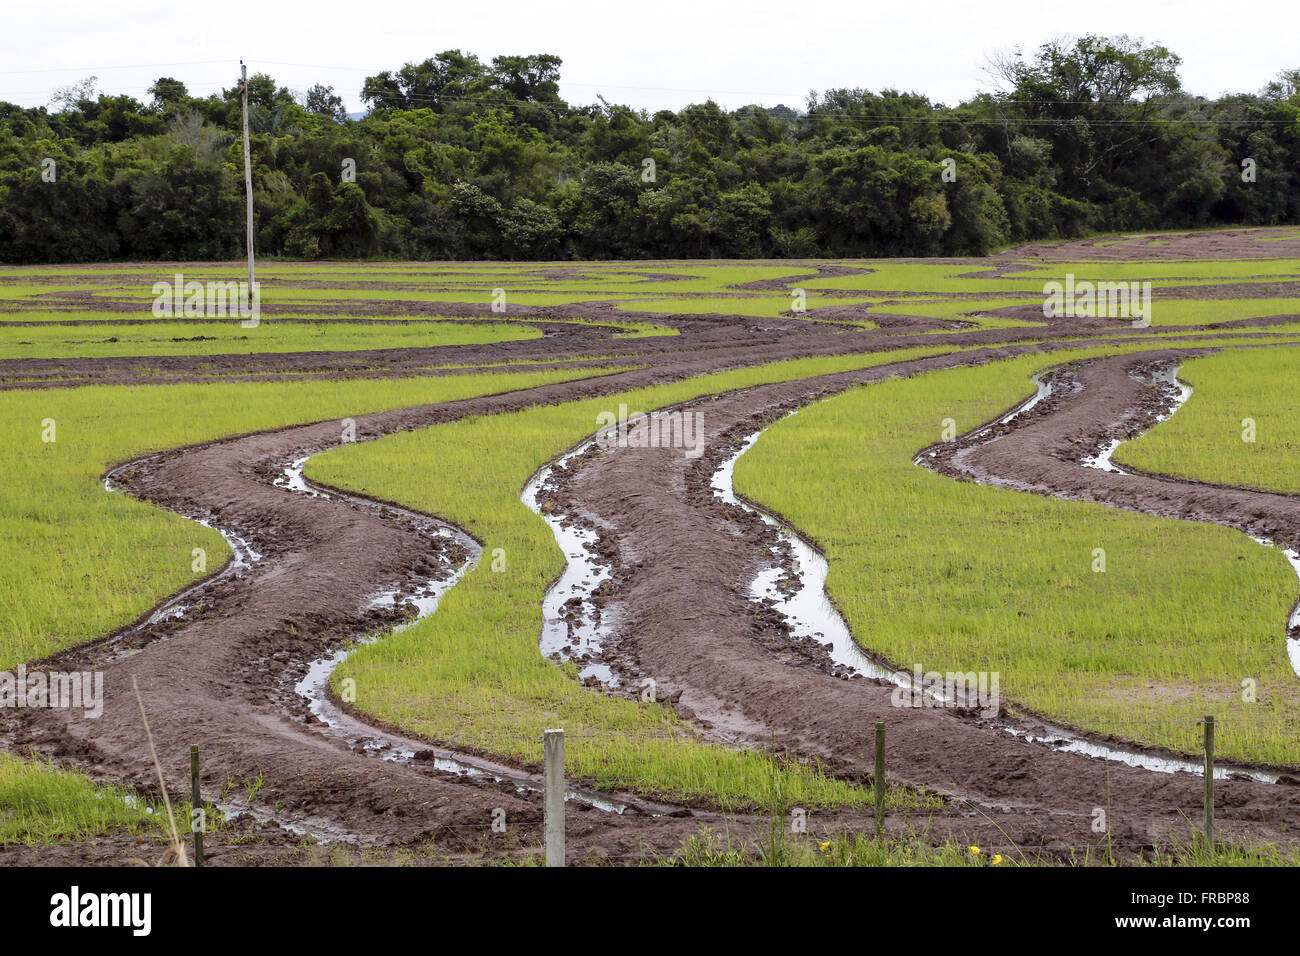 Level curves in rice plantation in the countryside - Stock Image